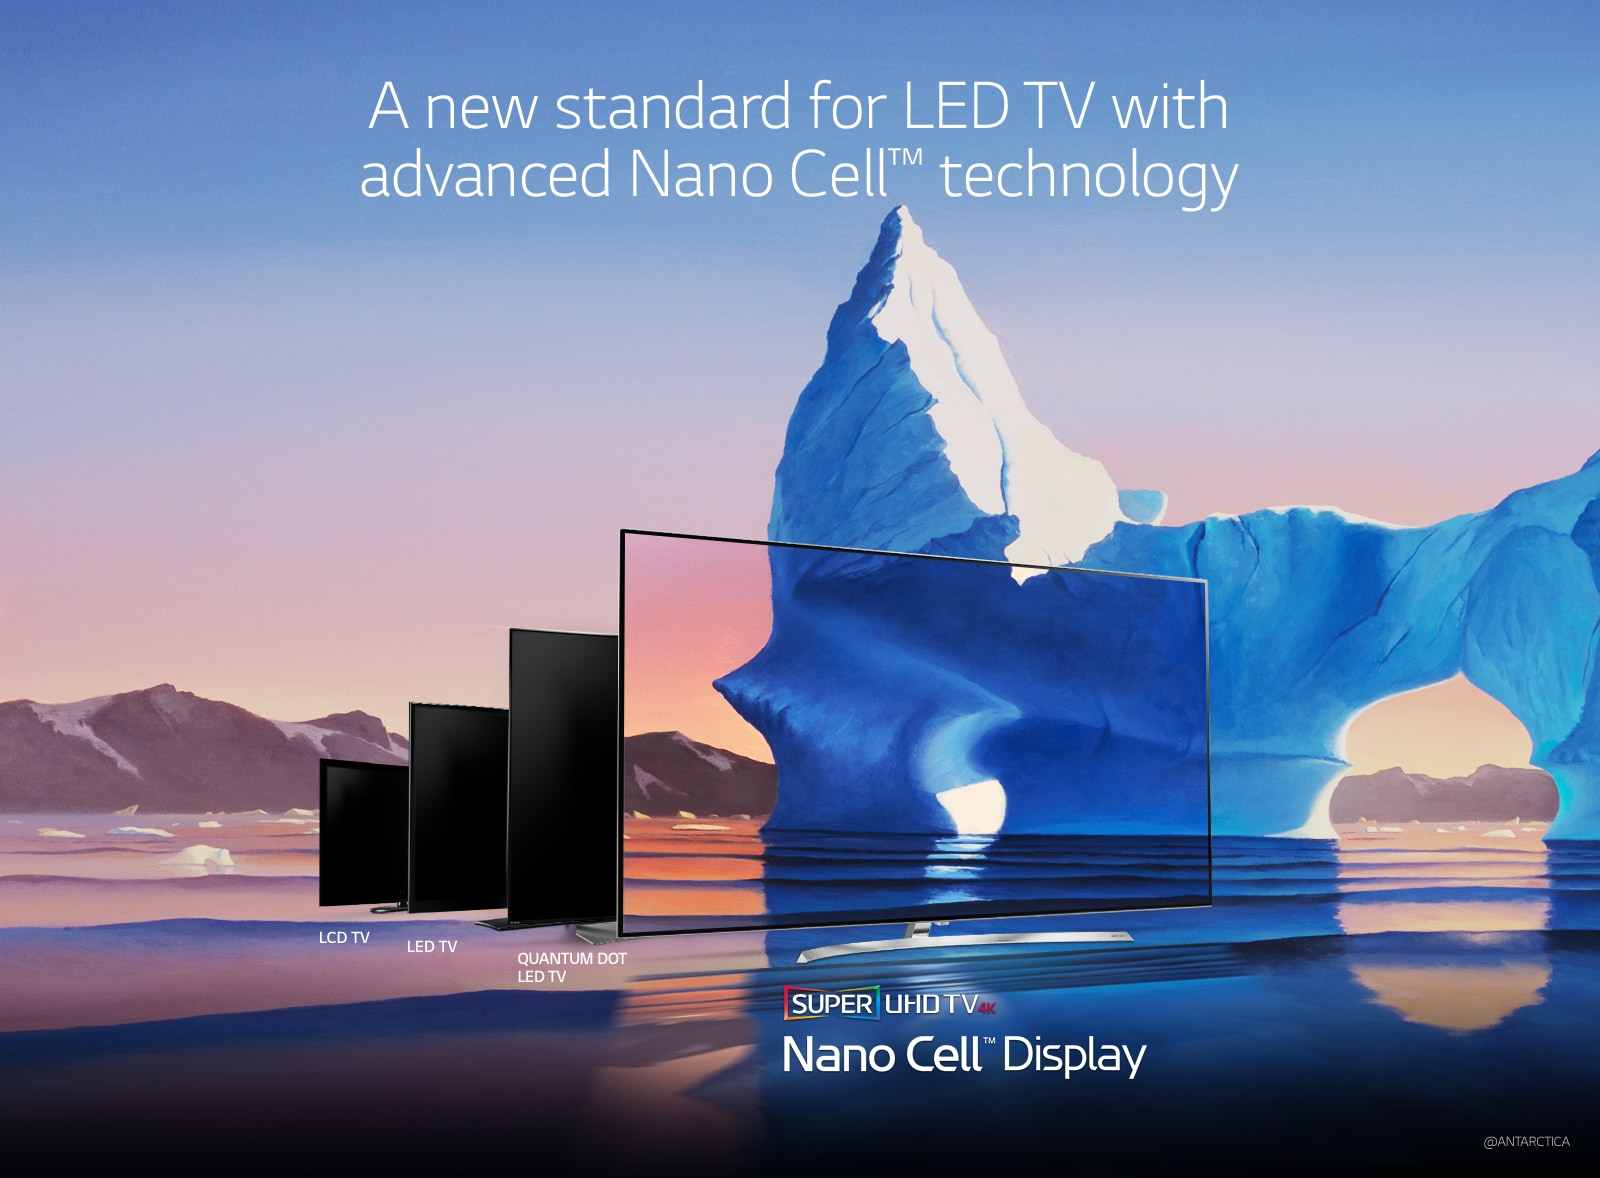 A new standard for LED TV with advanced Nano Cell™ technology